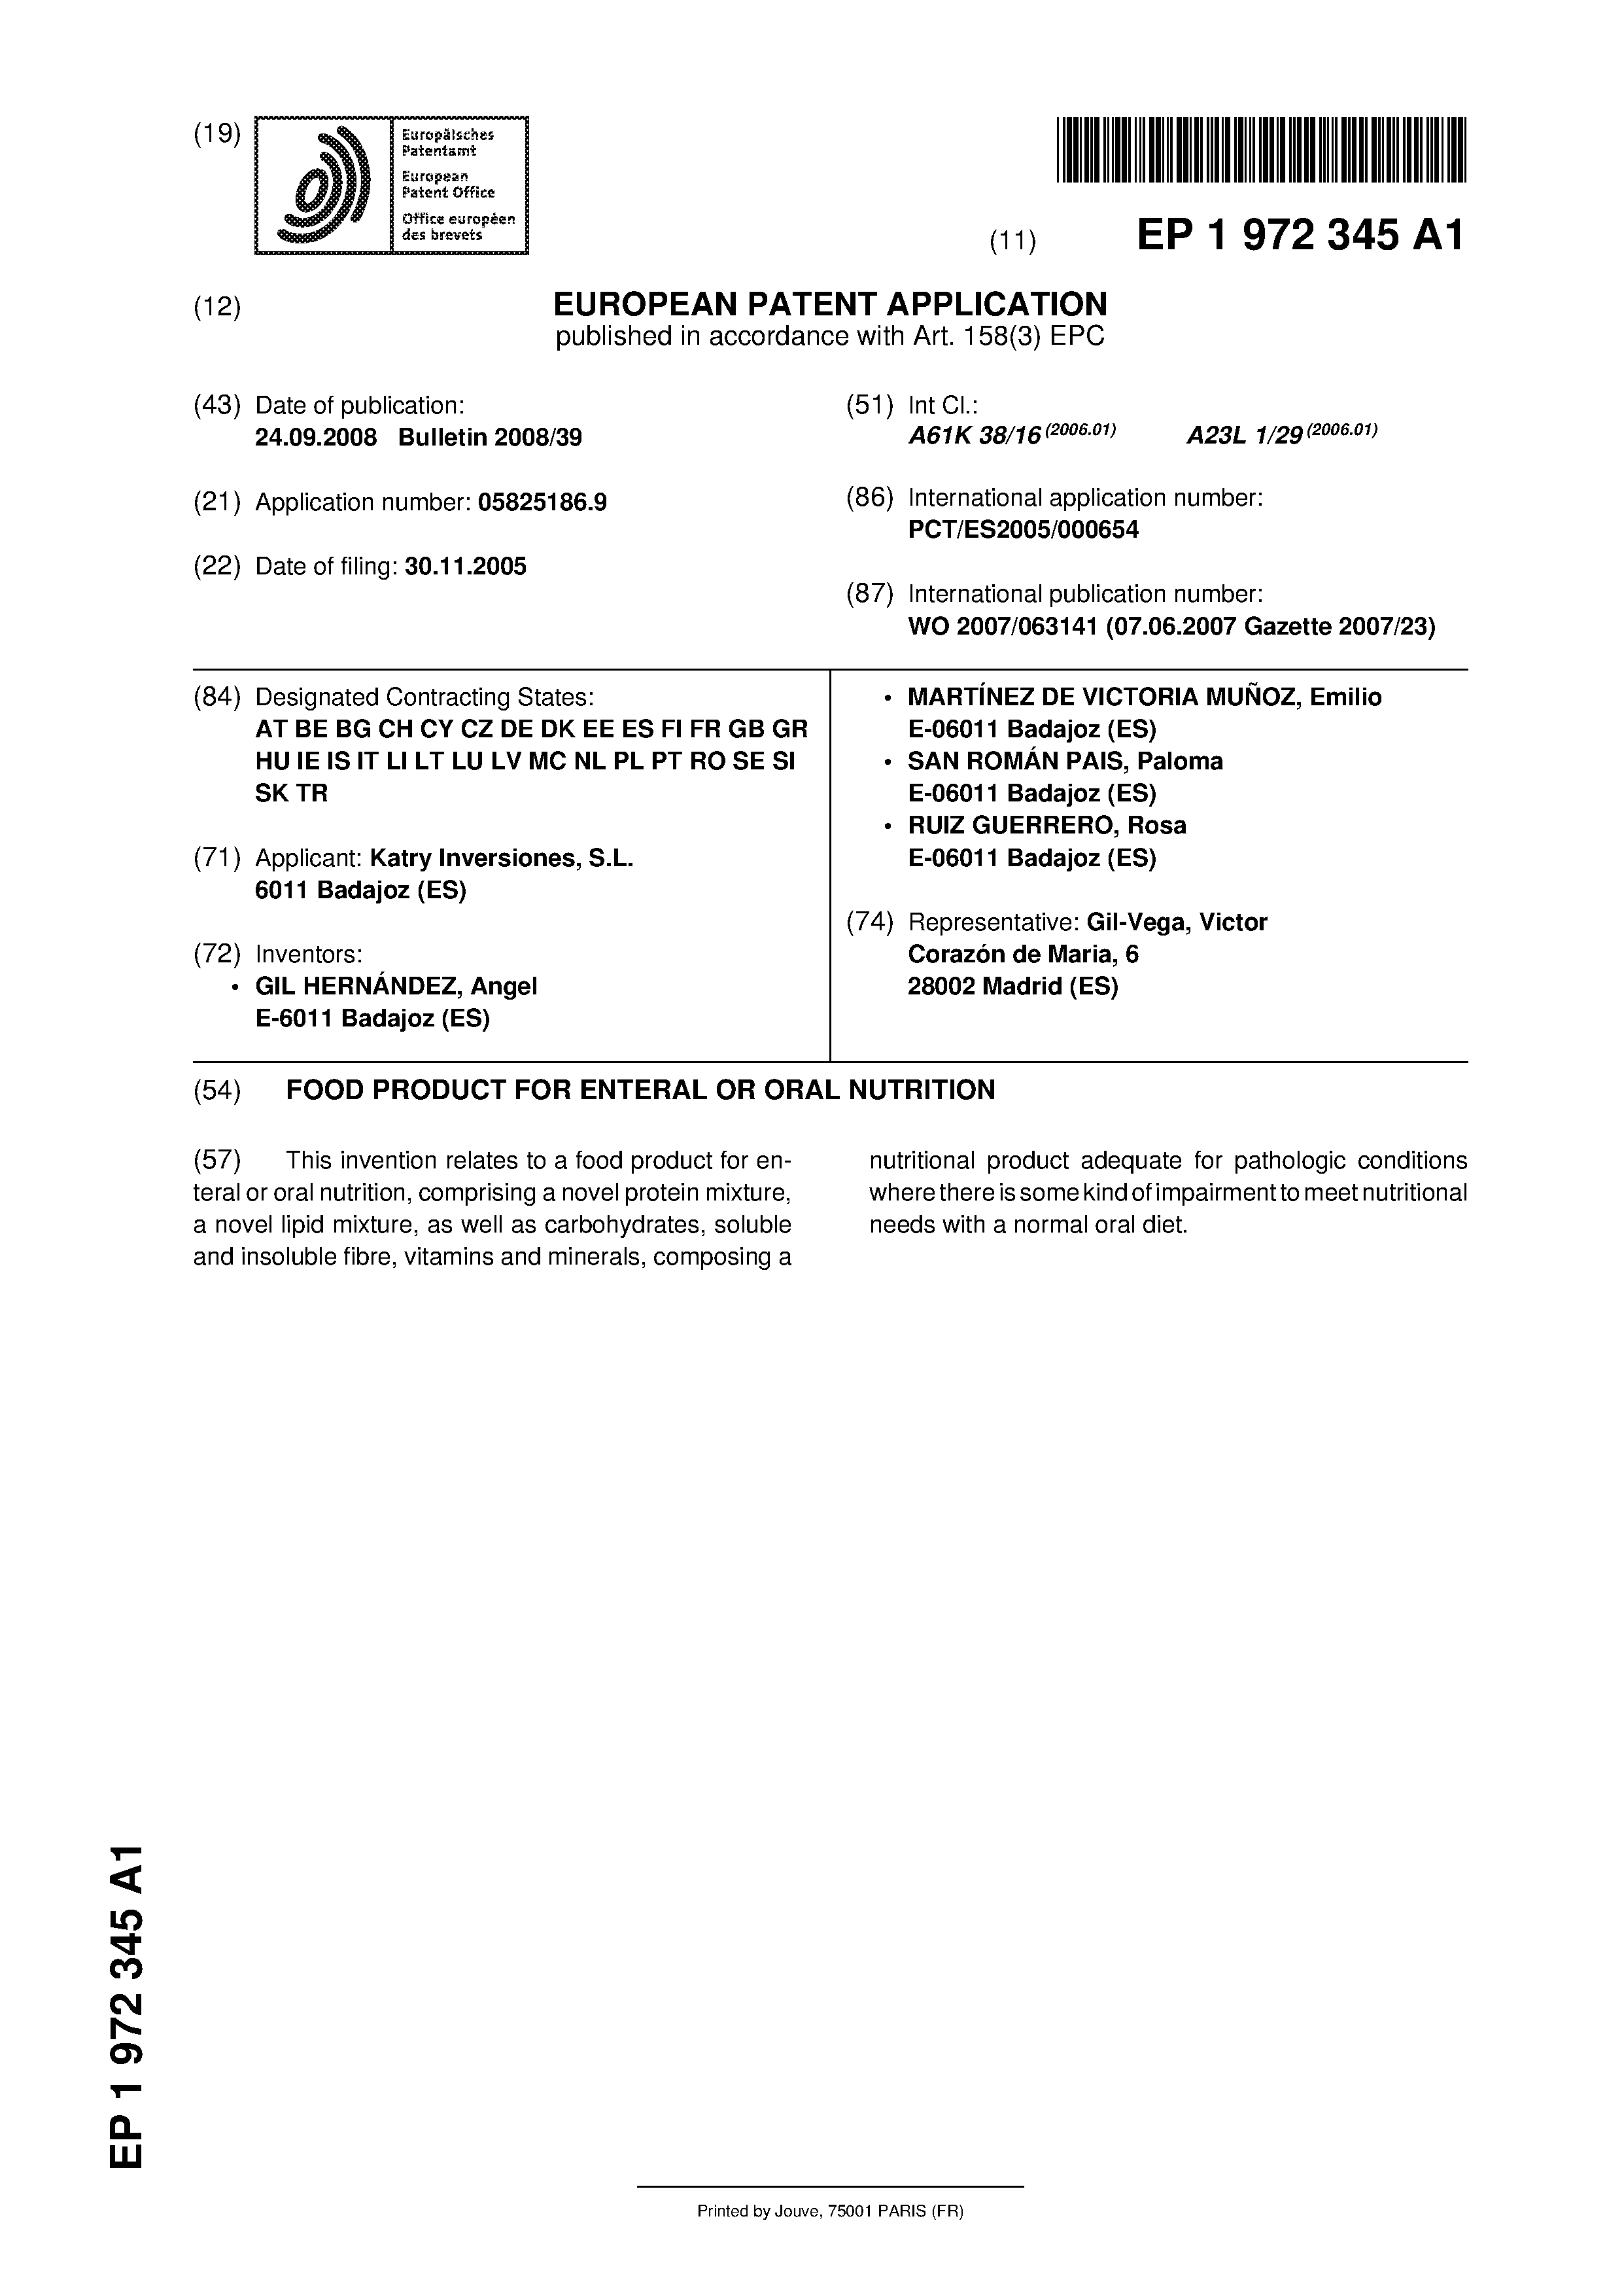 EP 1972345 A1 - Food Product For Enteral Or Oral Nutrition